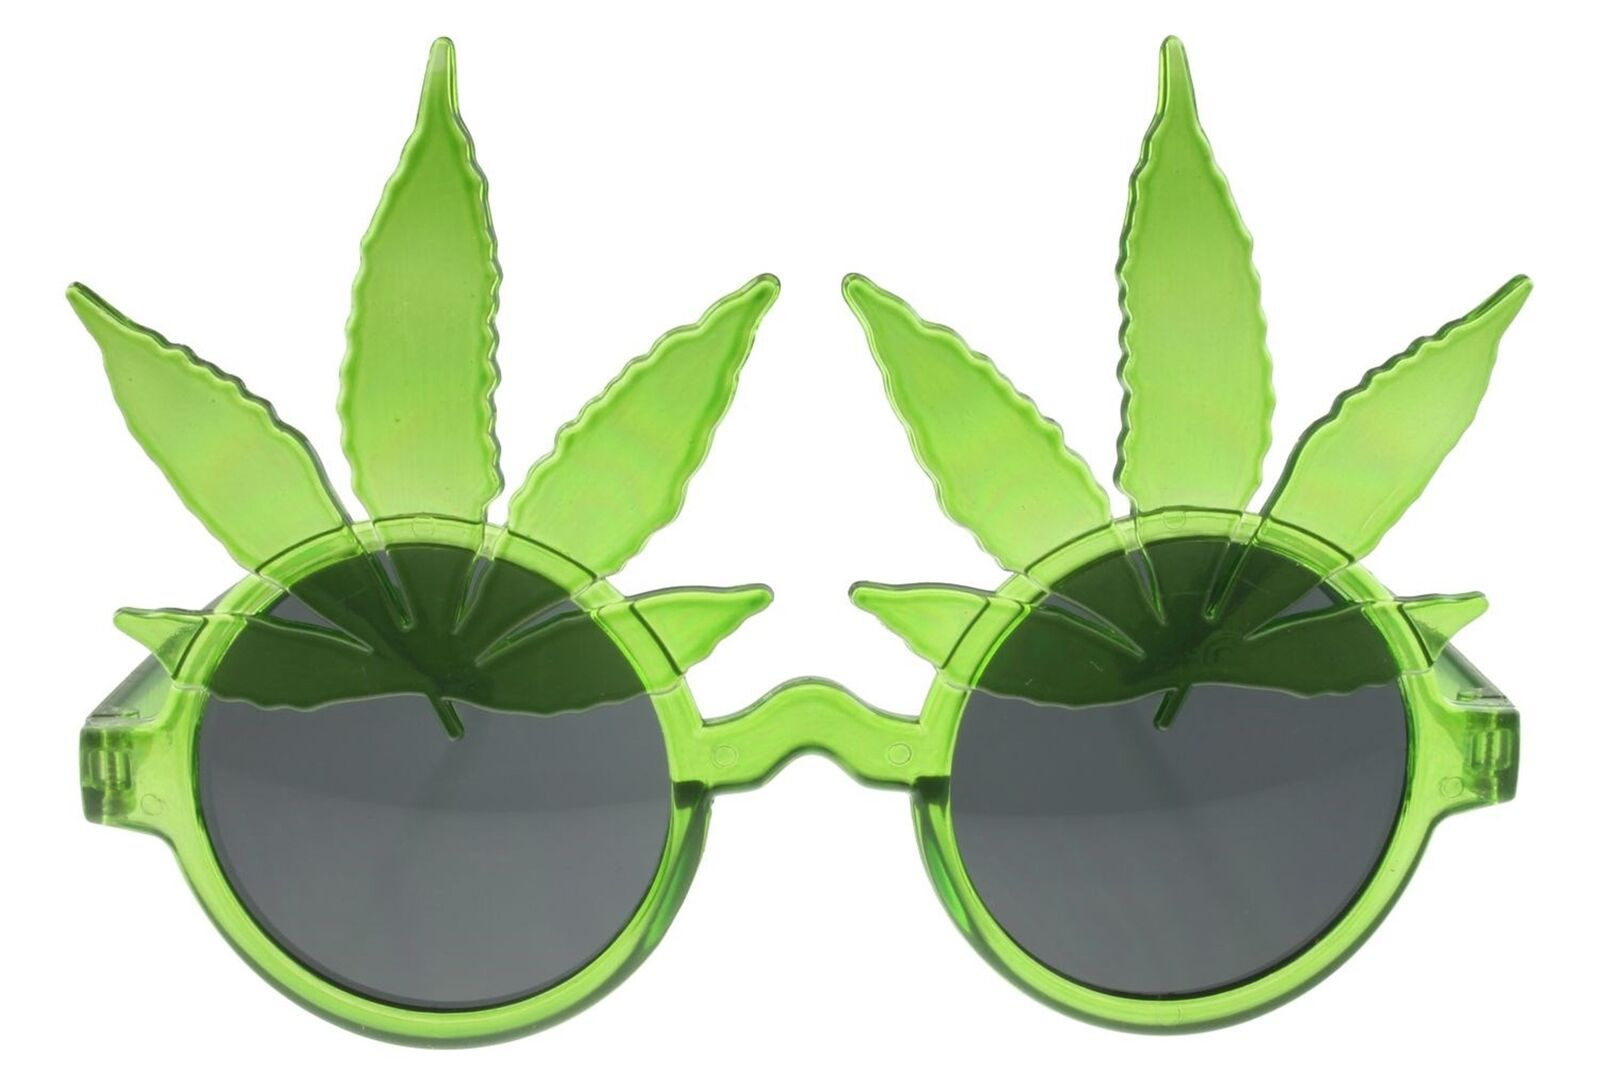 df16d7c5027f Details about 420 Marijuana Pot Glasses Sunglasses Leaf Party Novelty Green  Gray